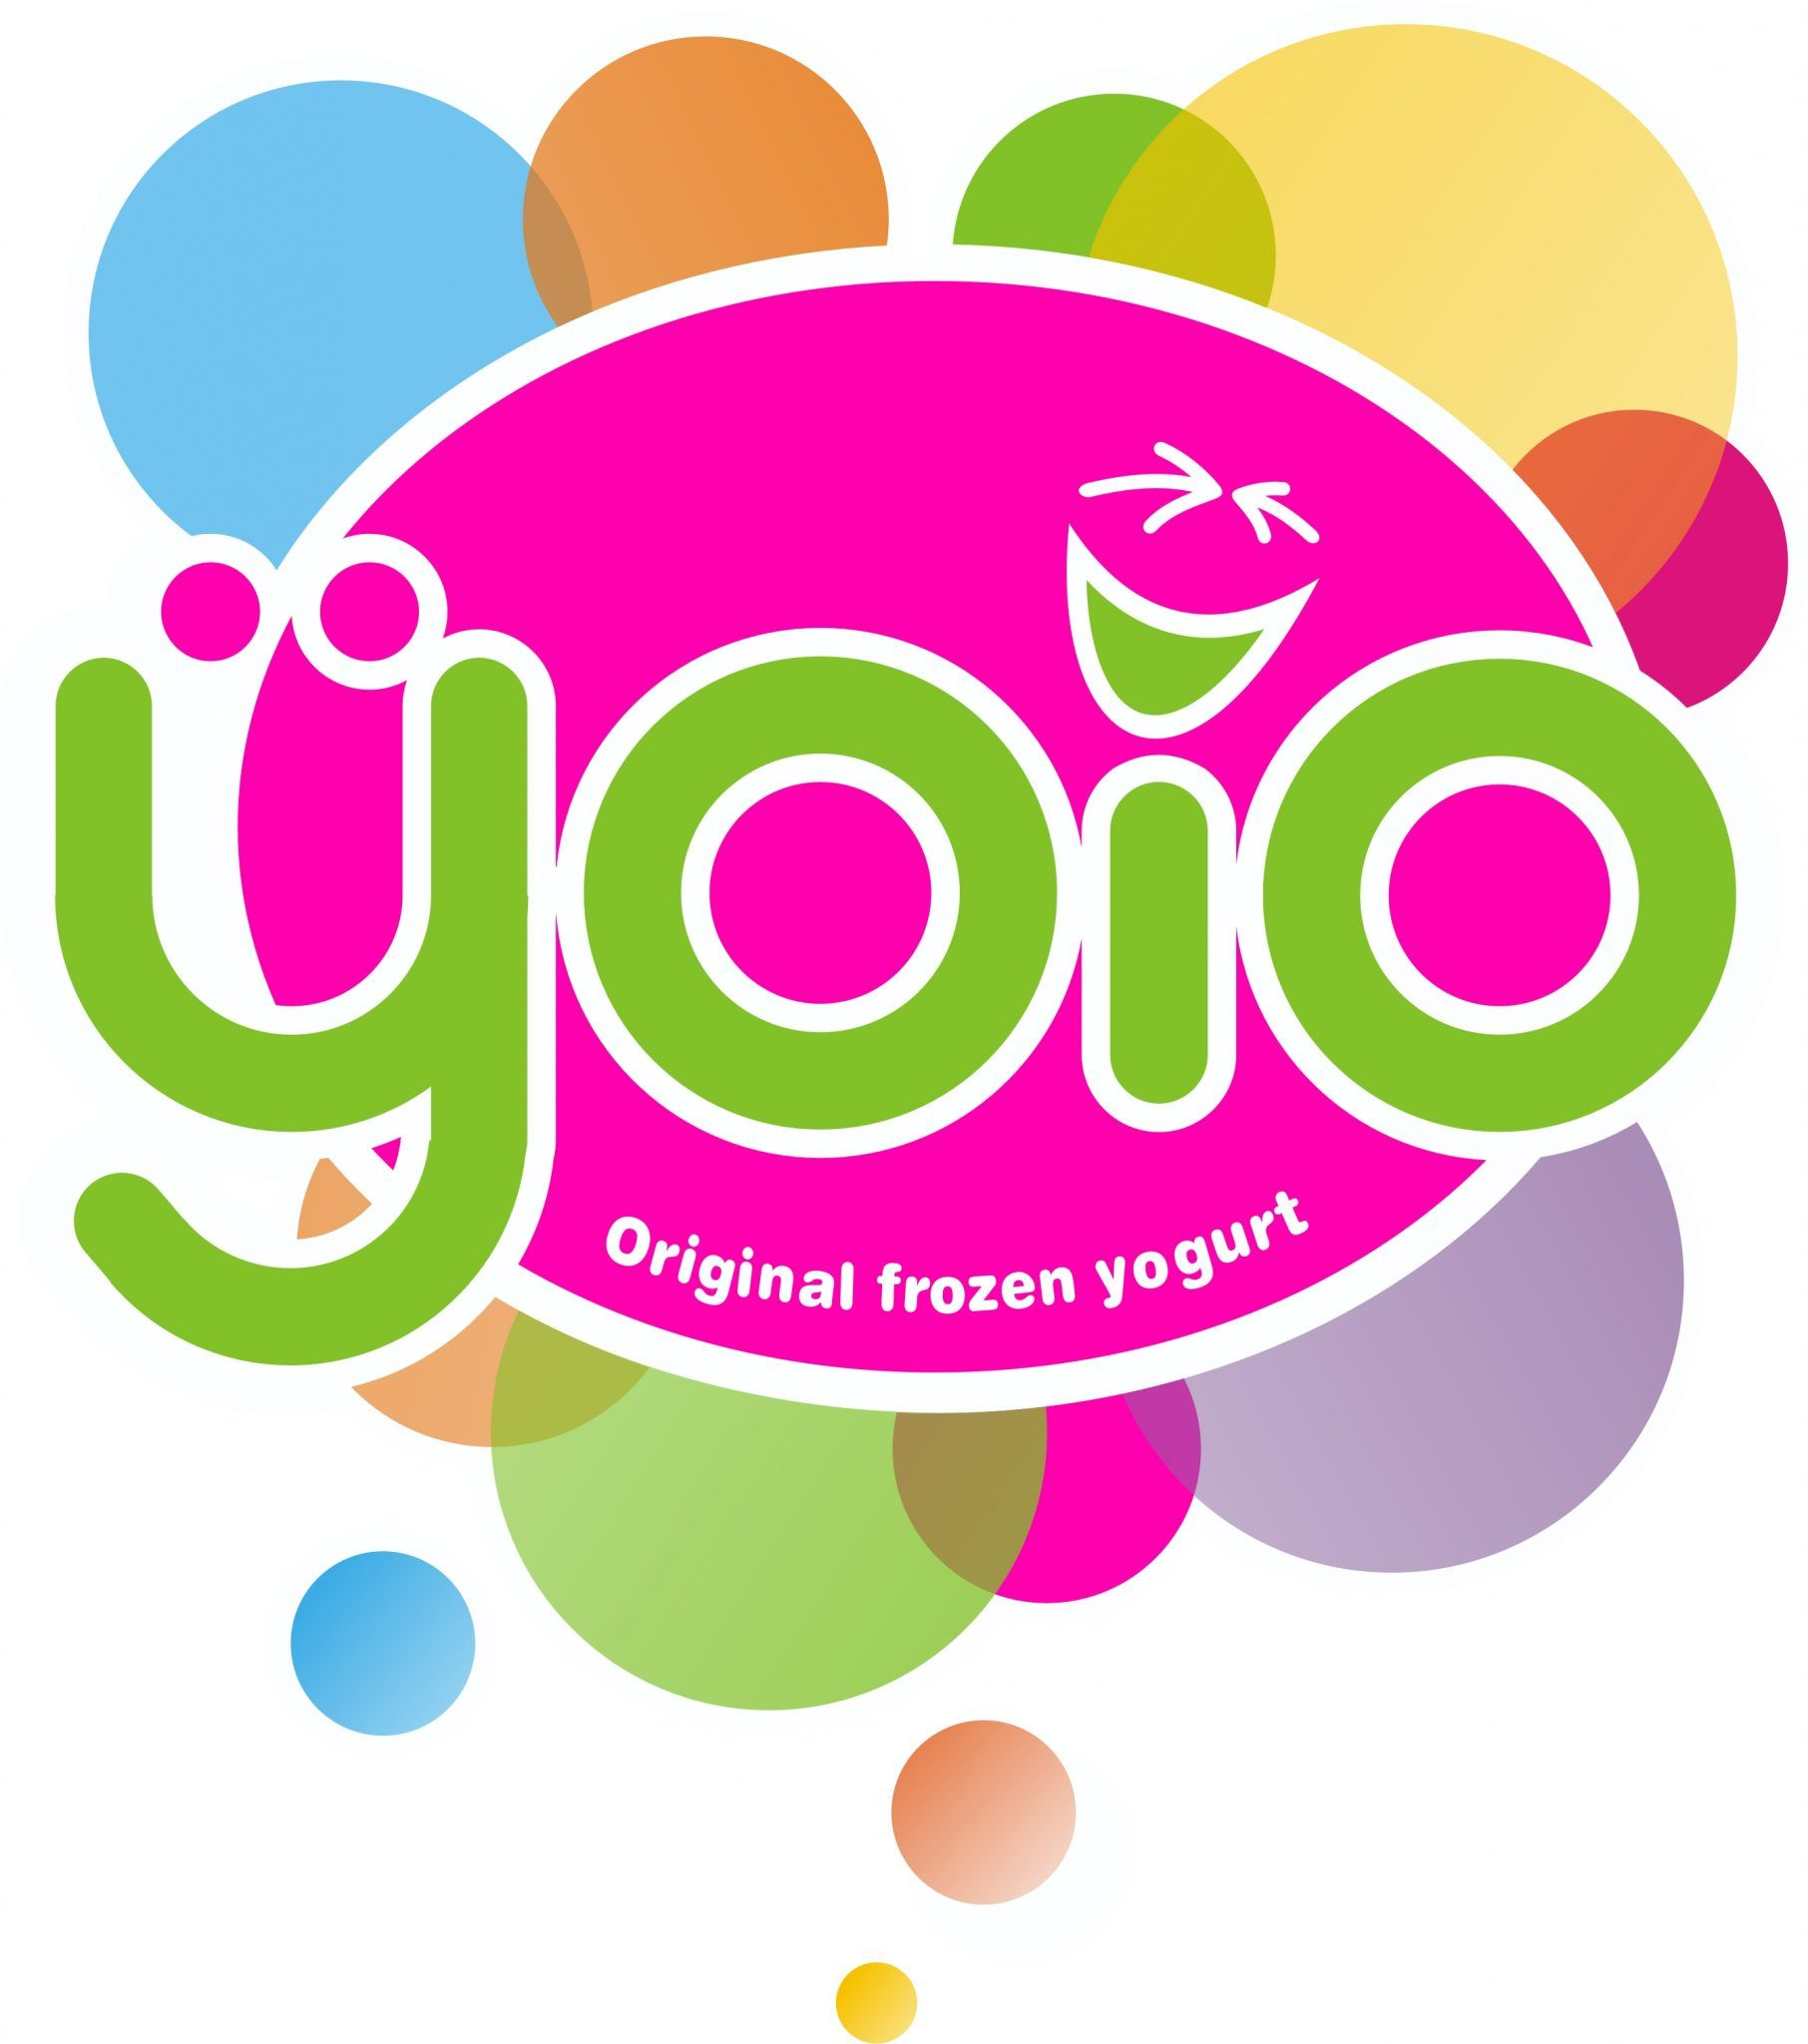 Ÿoio, original frozen yogur